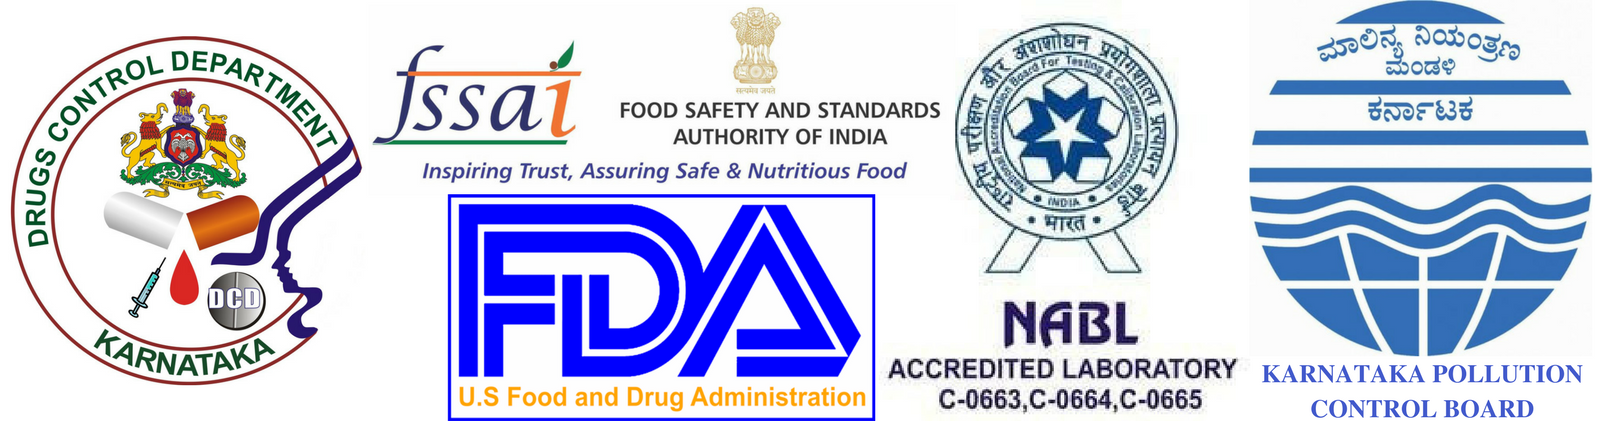 NABL-FSSAI-accredidated-approved